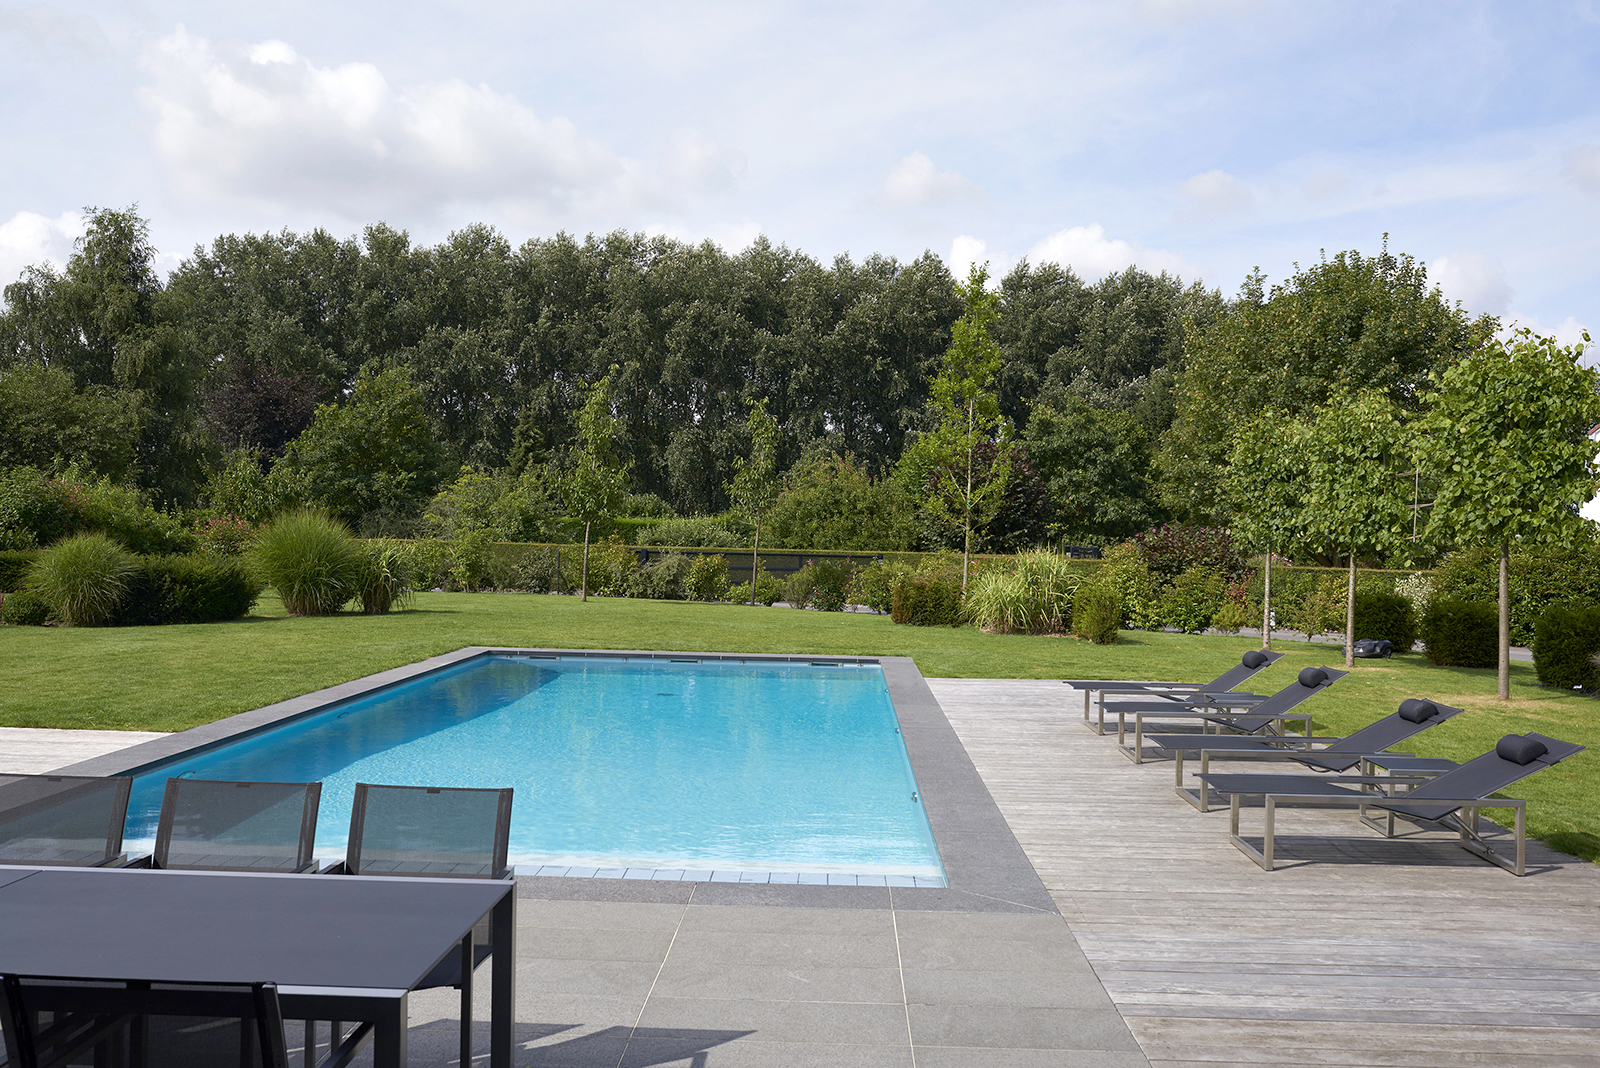 piscine paysagee avec mobilier outdoor